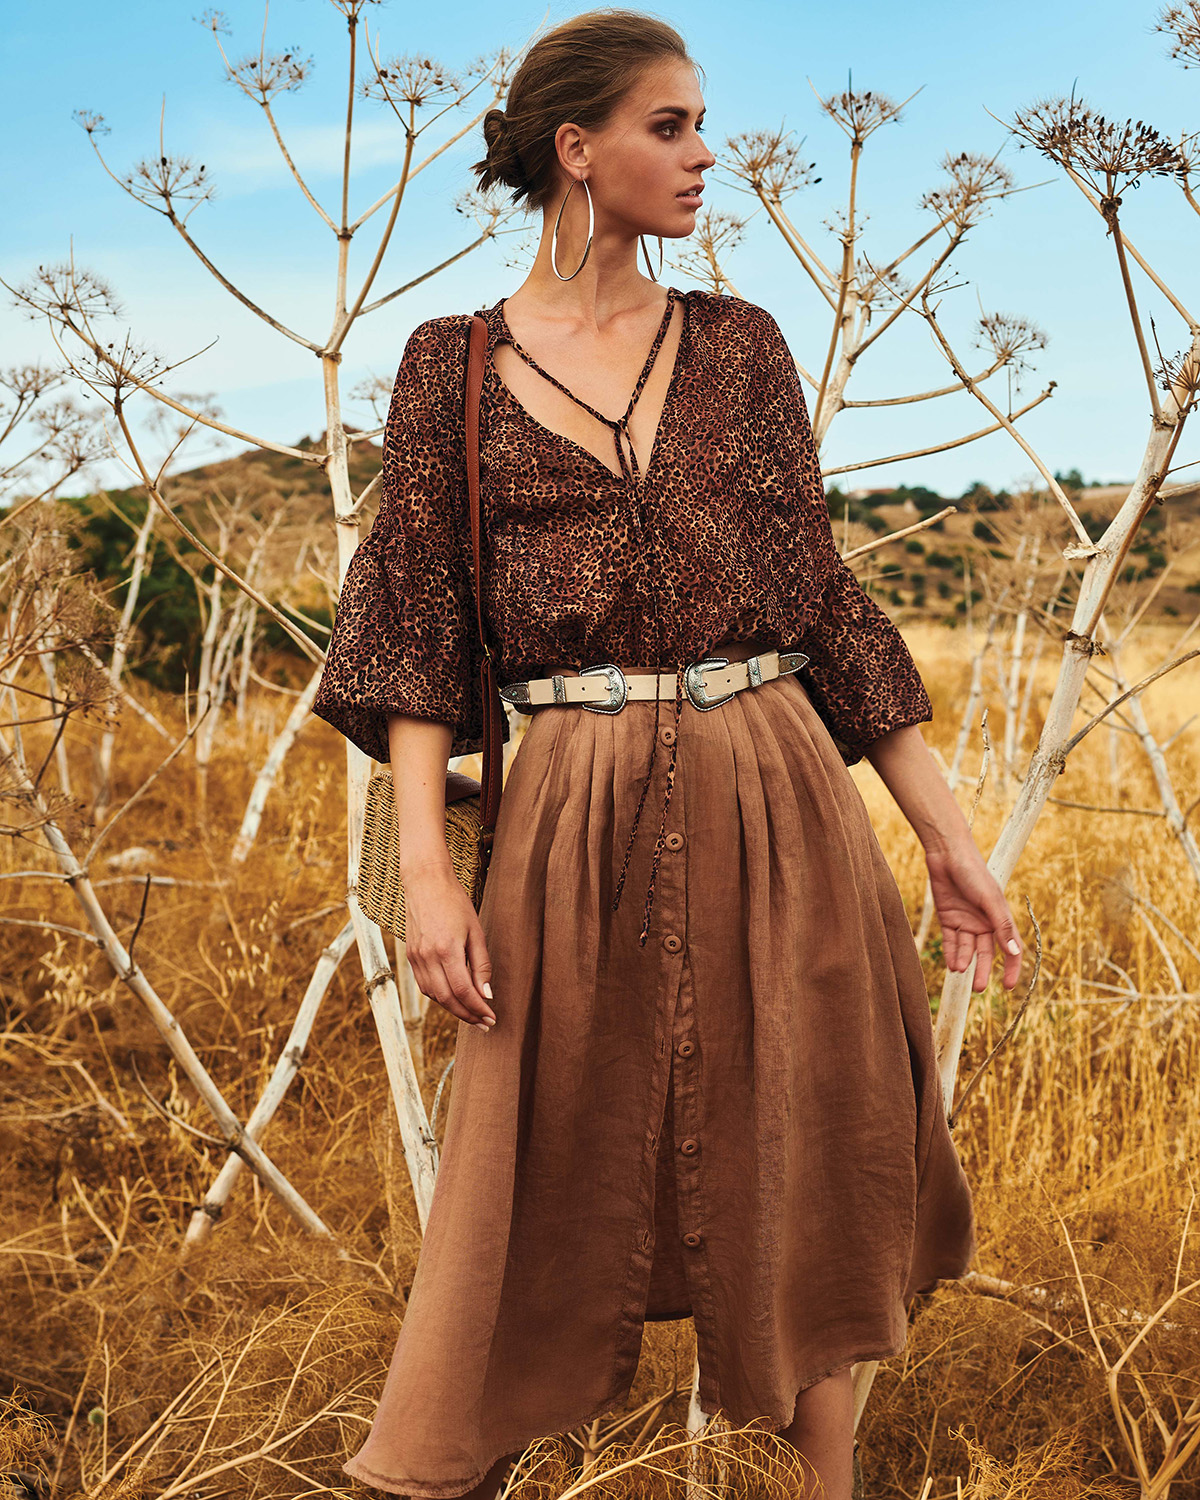 40489b4d619 BSB Fashion   Shop the latest trends in female fashion